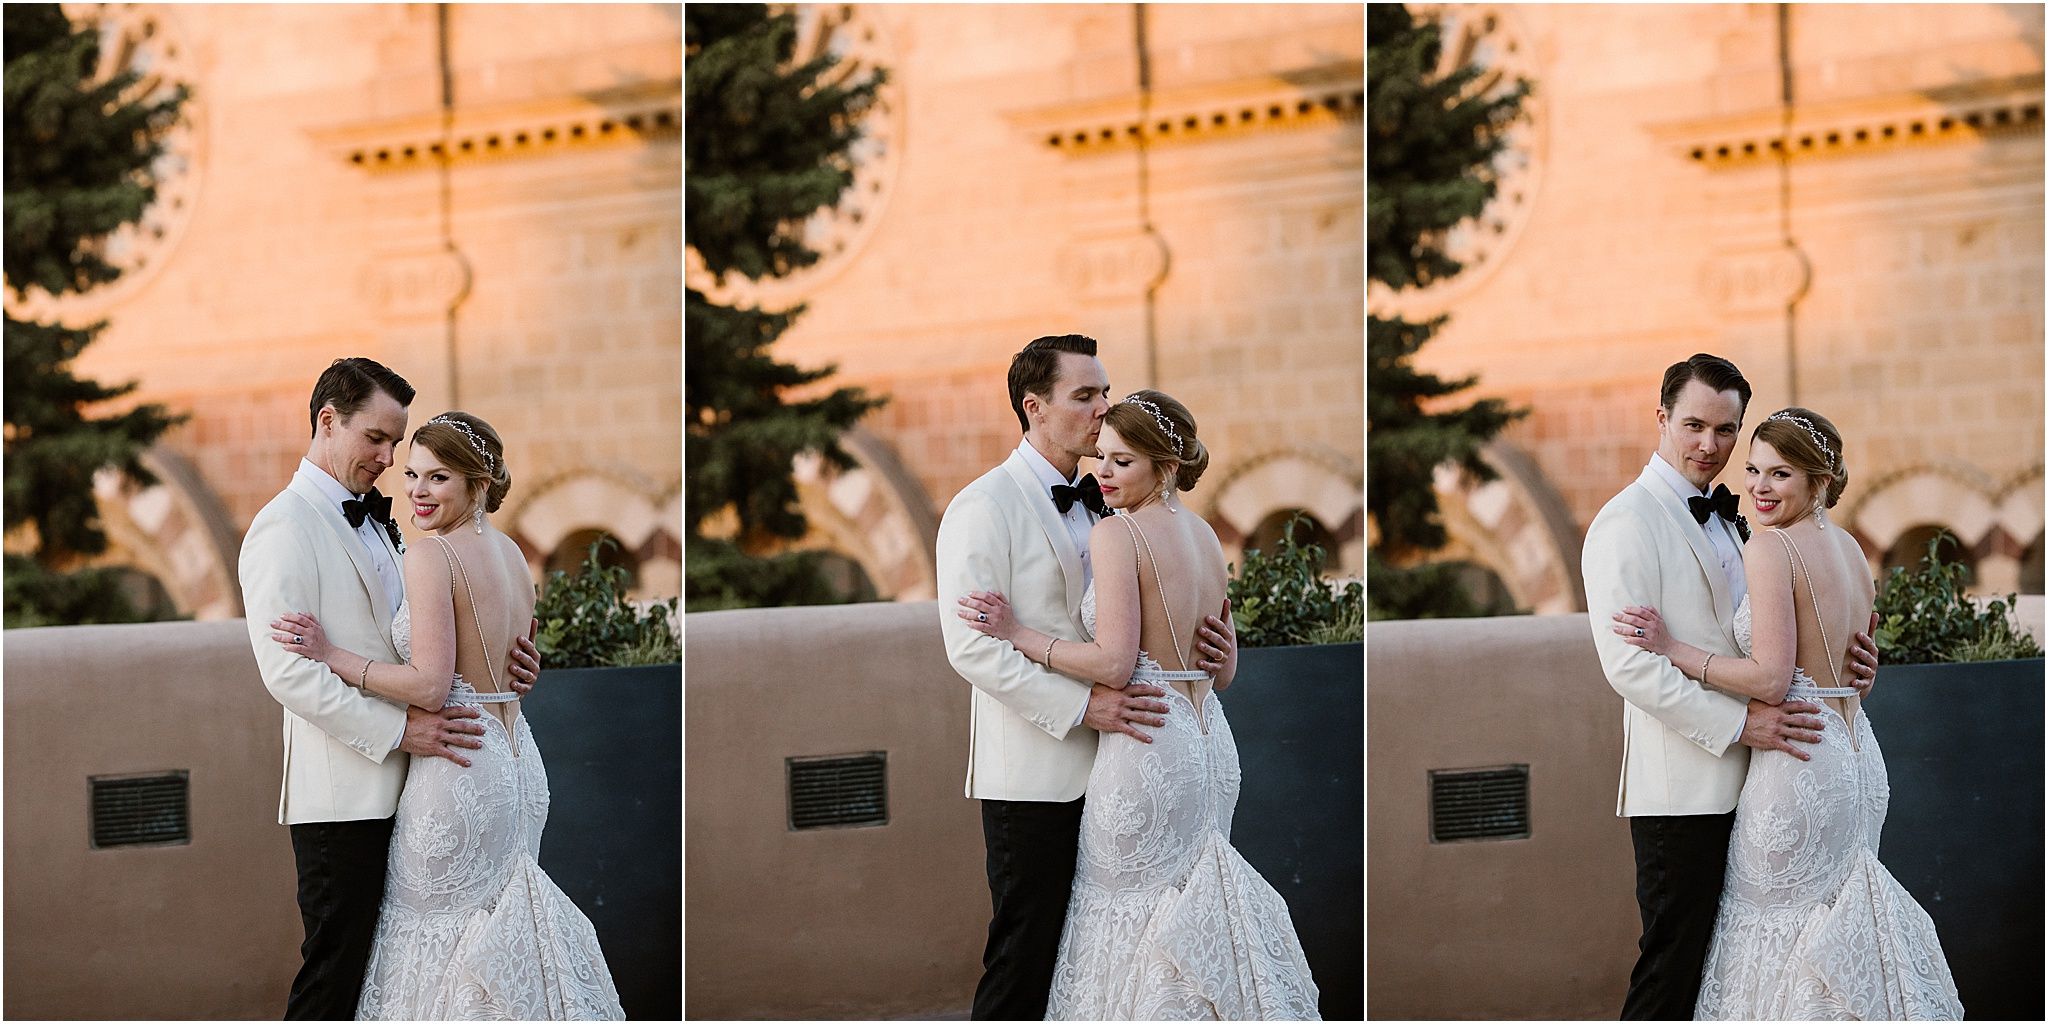 BLUE ROSE PHOTOGRAPHY SANTA FE WEDDING_52